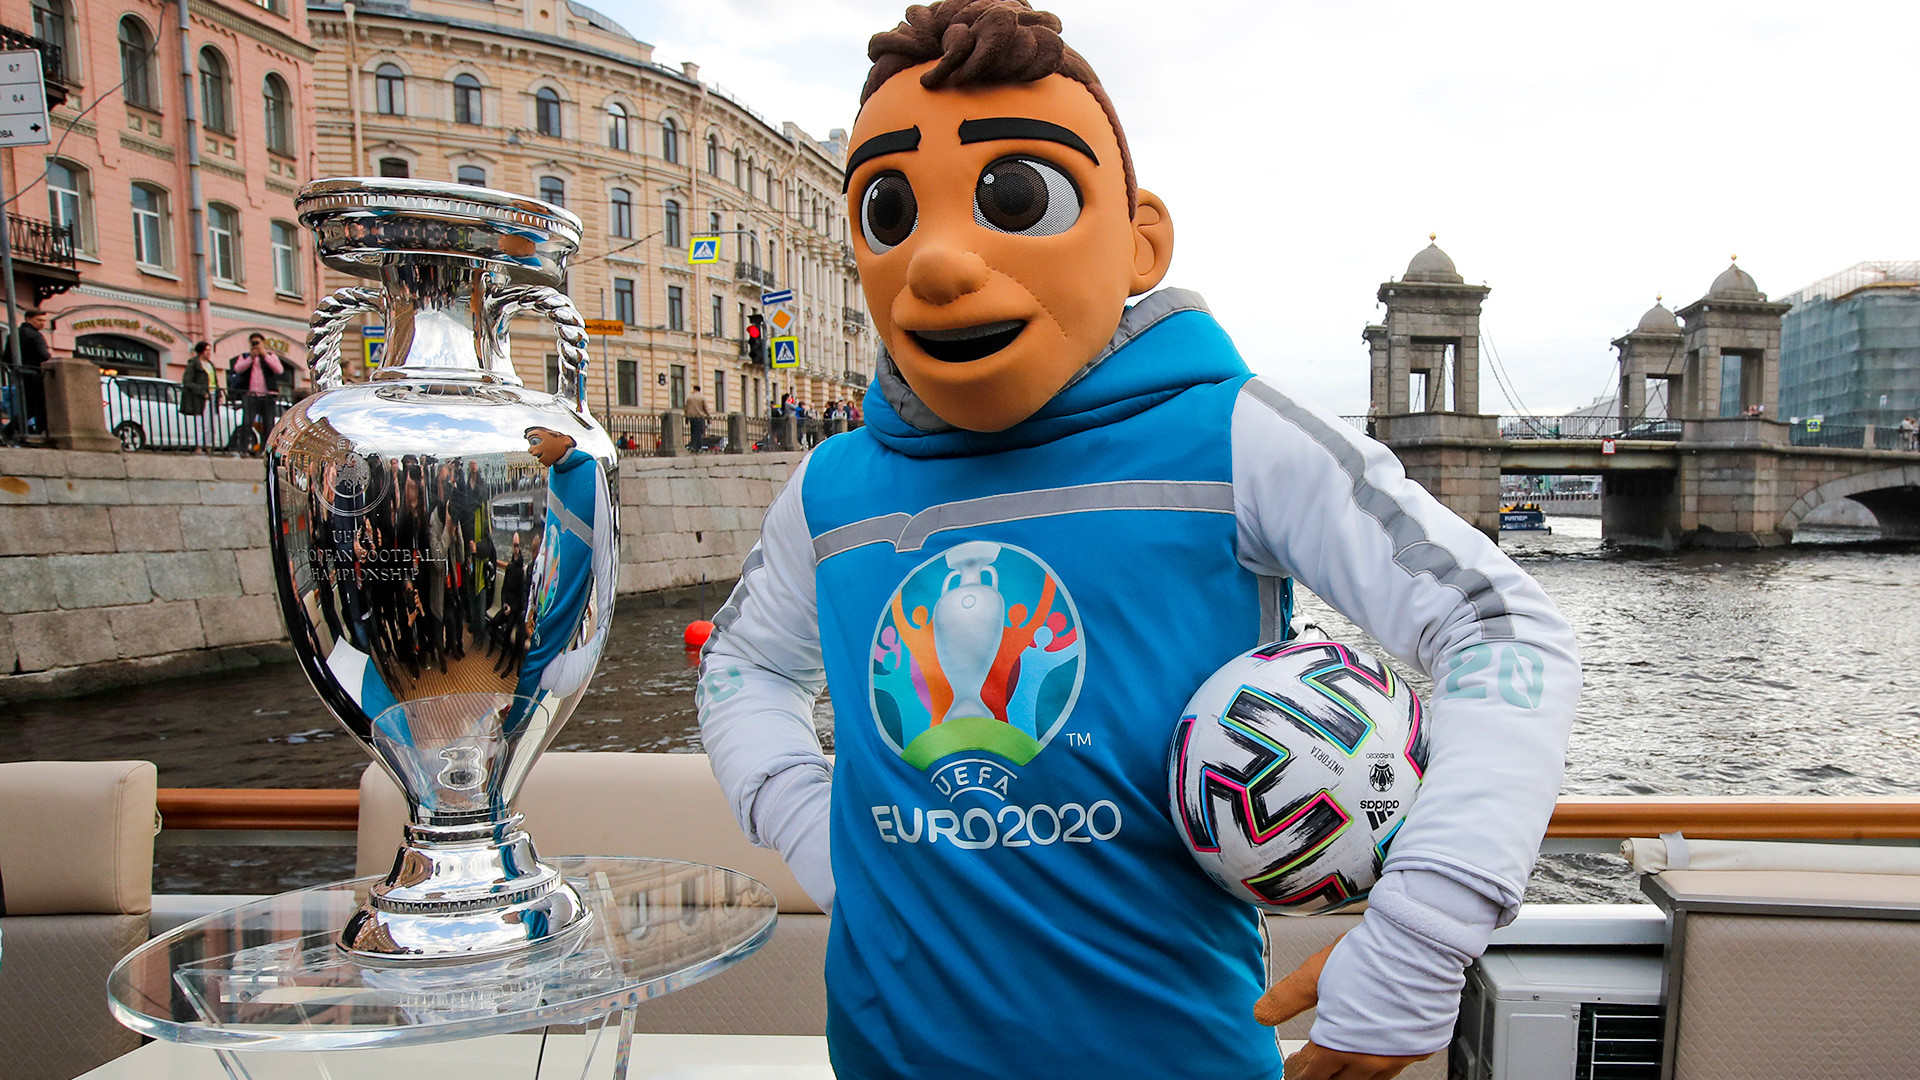 EURO 2020 championship mascot Skillzy poses with the EURO 2020 trophy traveling on a boat down the Fontanka River during the official EURO 2020 trophy's tour in St.Petersburg, Russia, Saturday, May 22, 2021. St. Petersburg will host seven postponed UEFA EURO 2020 matches, including a quarter final.